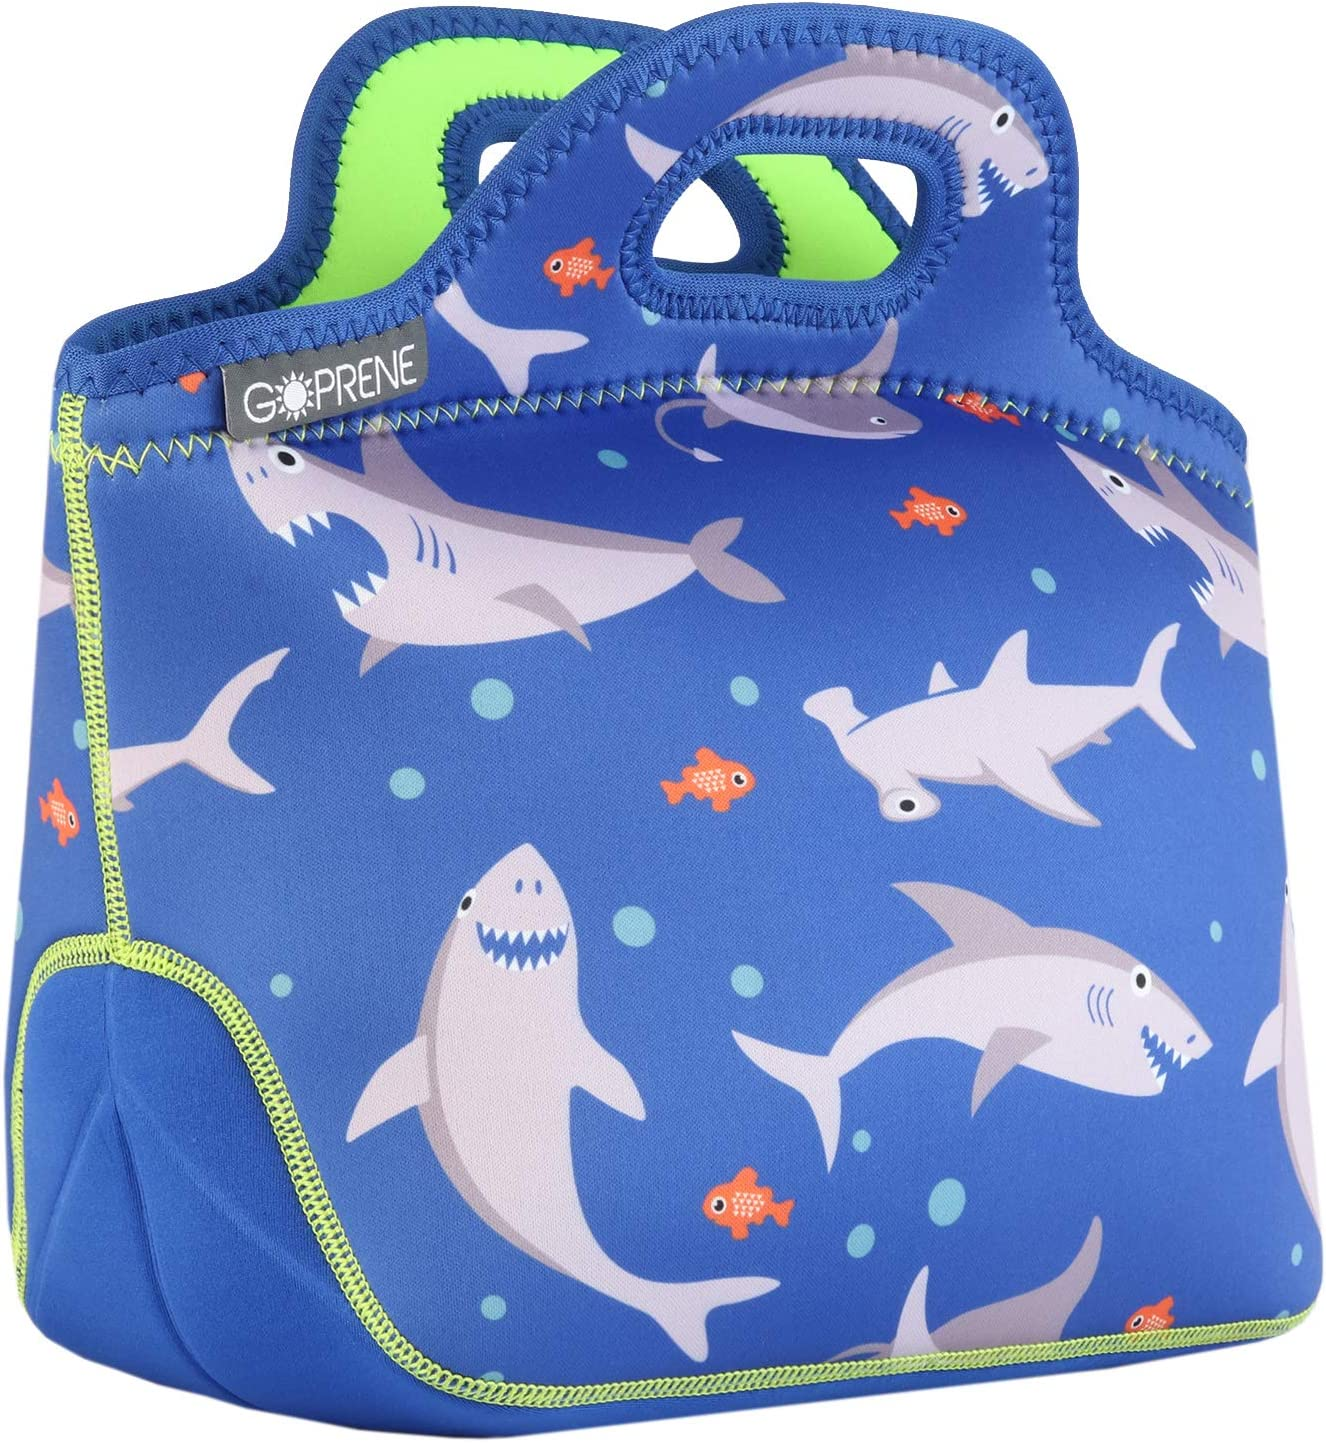 GOPRENE Lunch Bag For Boys, Fits A Kids Lunch Box, Insulated Neoprene Bag, Blue Shark, Bento Box and Thermos Fit Easily, Keeps Food Cold 4 Hours, Perfect For Your Son, Child, or Toddler at School